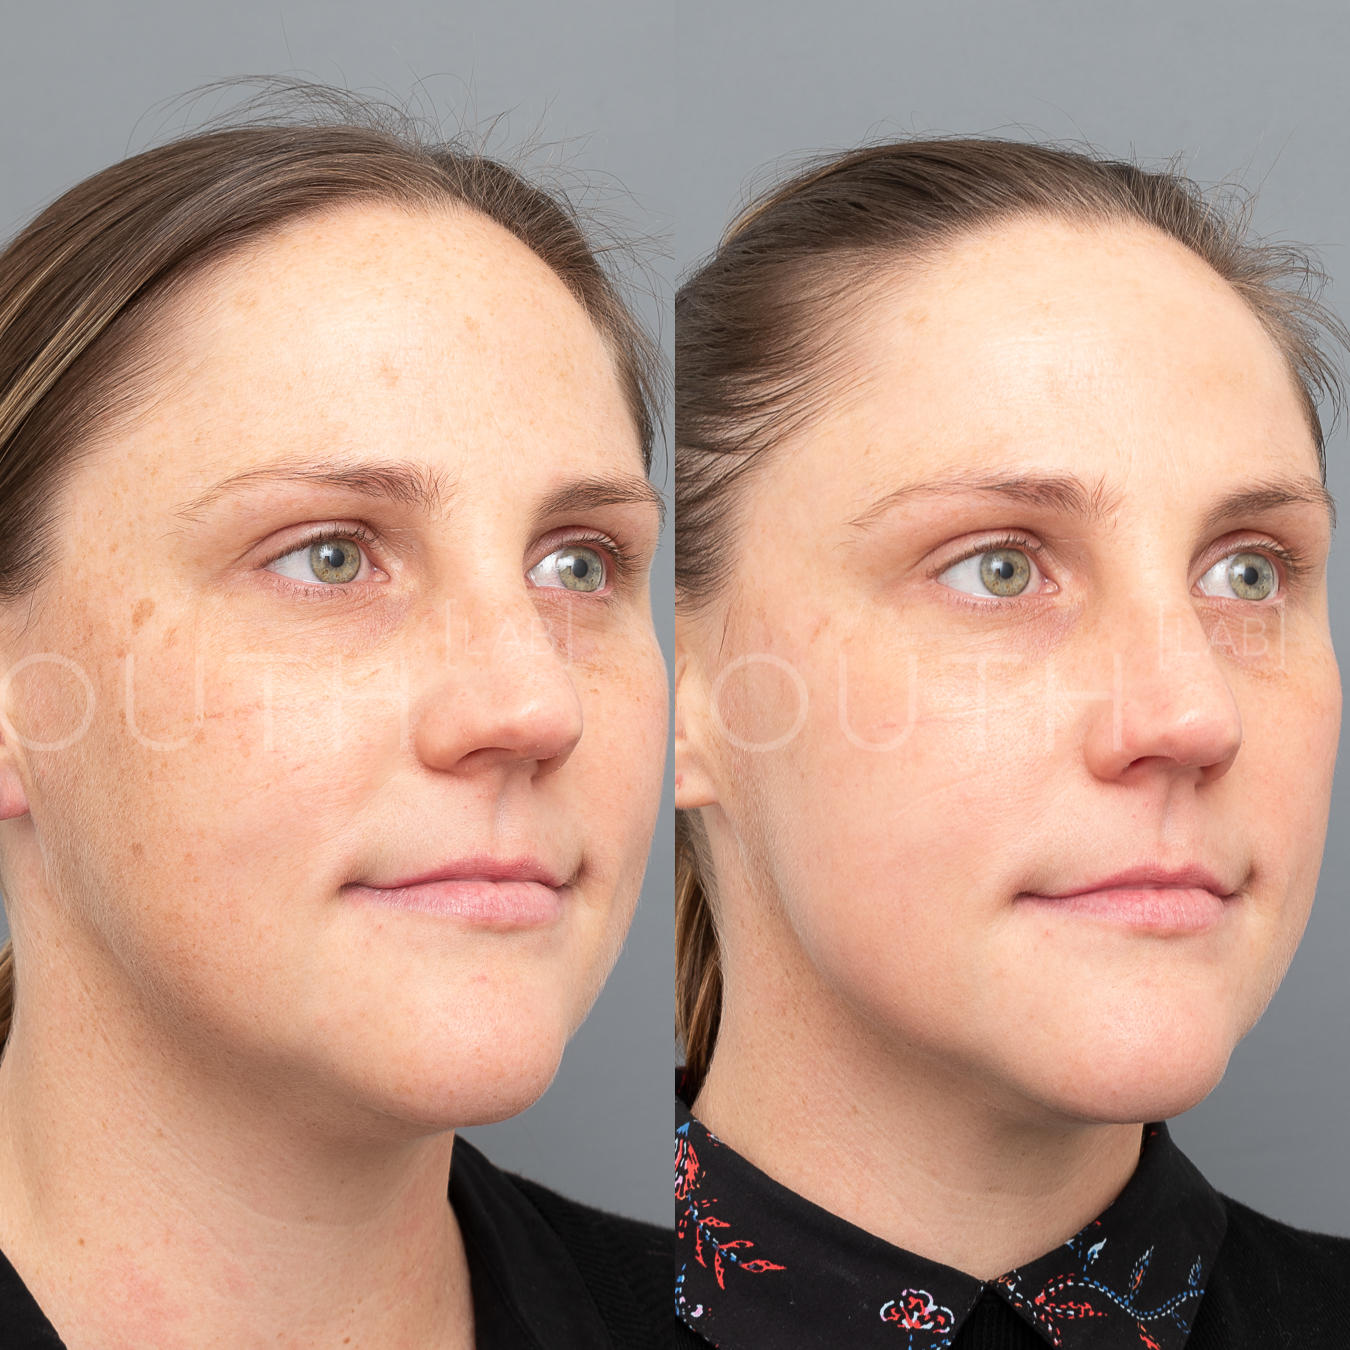 BBL Photorejuvenation - 4 weeks post    1 treatment. Raw image